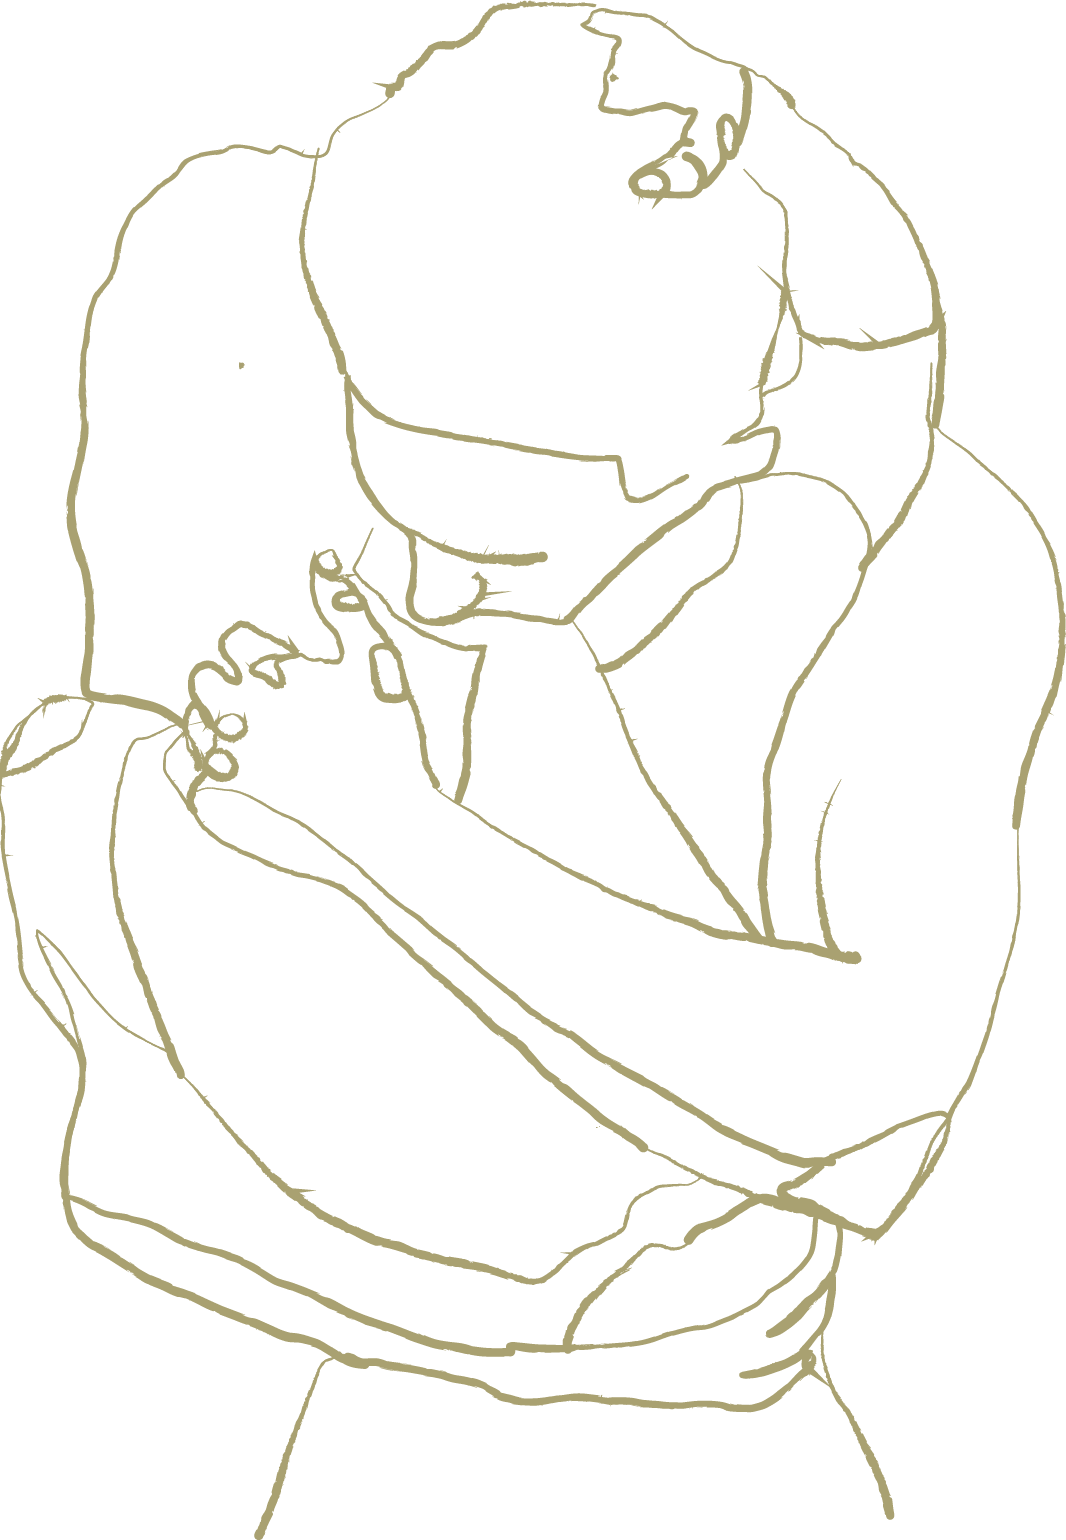 Line drawing couple embracing